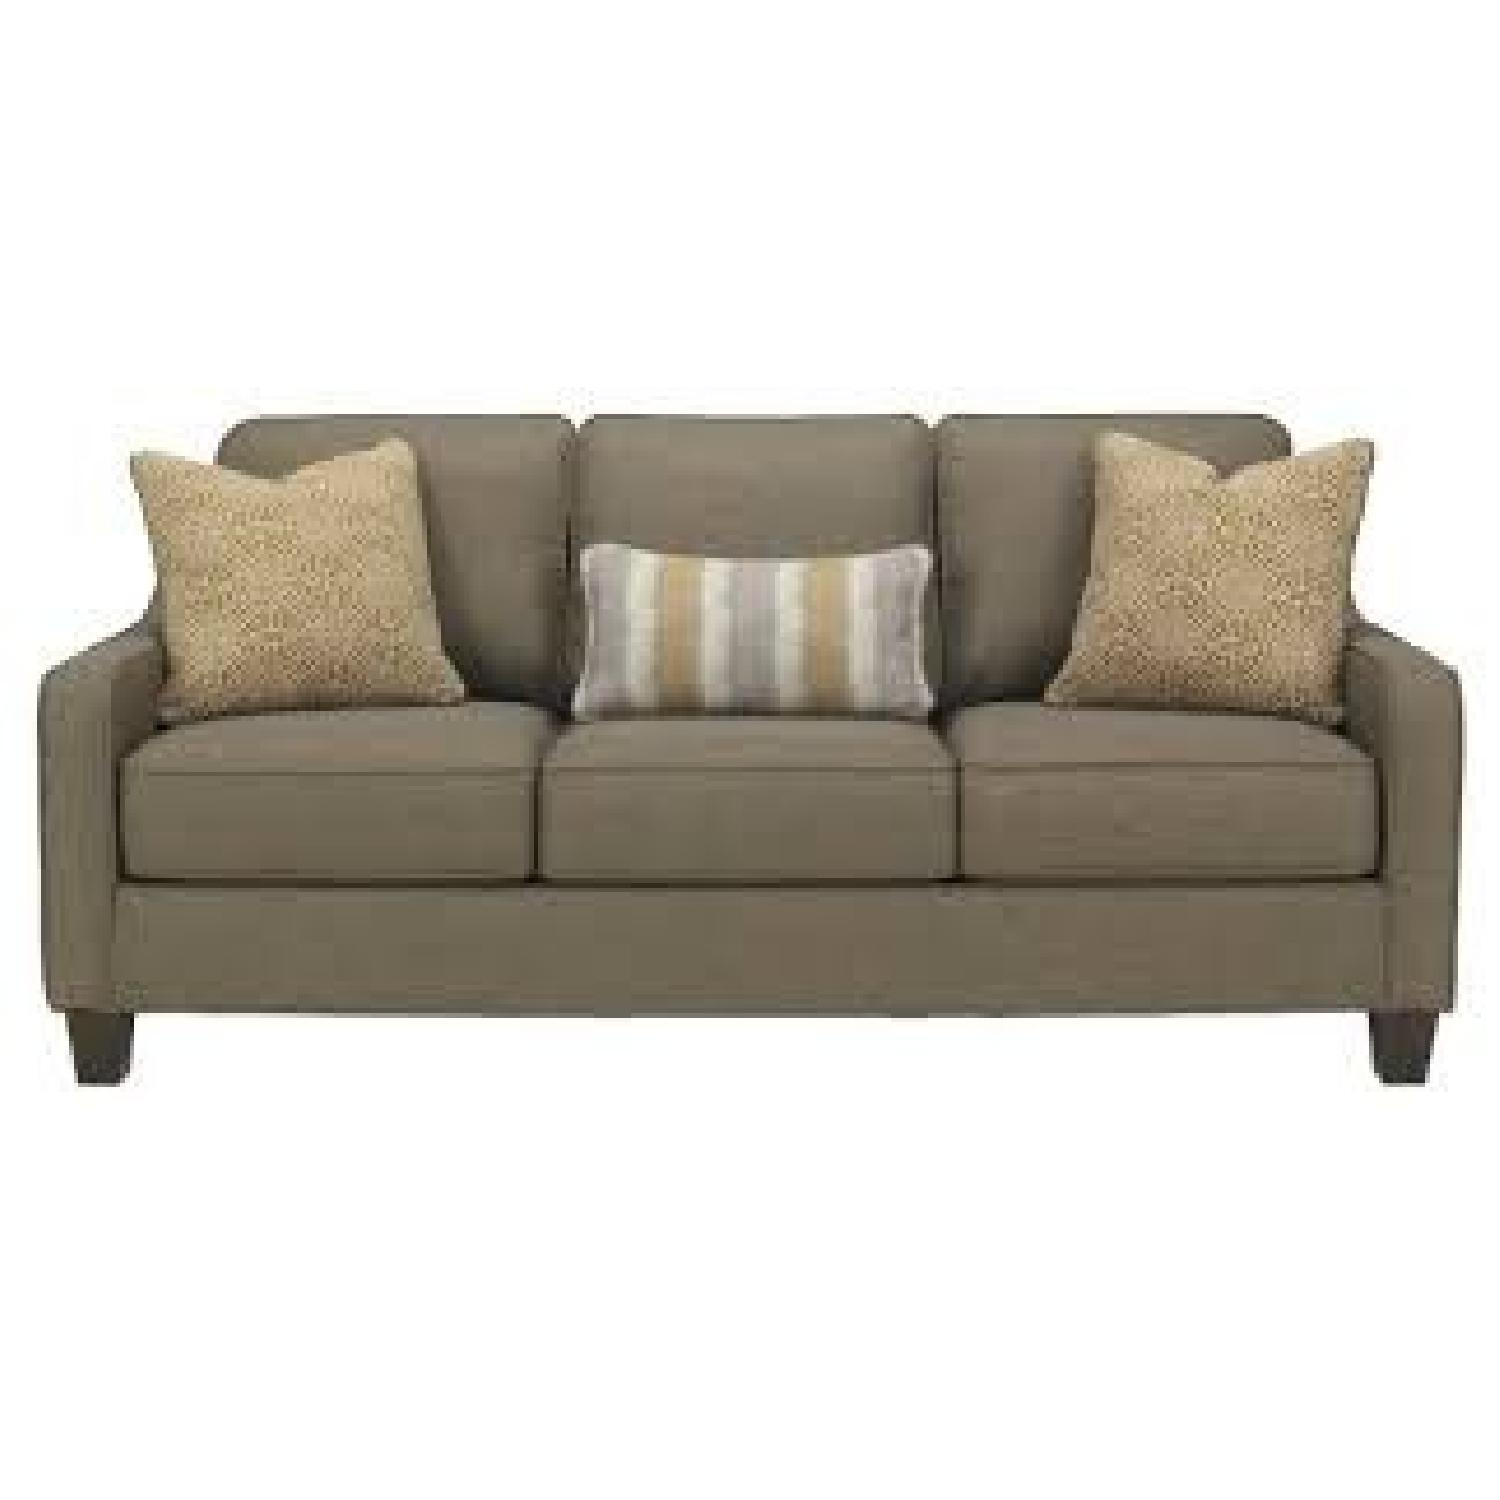 Jennifer Convertible Mena Queen Sleeper Sofa AptDeco